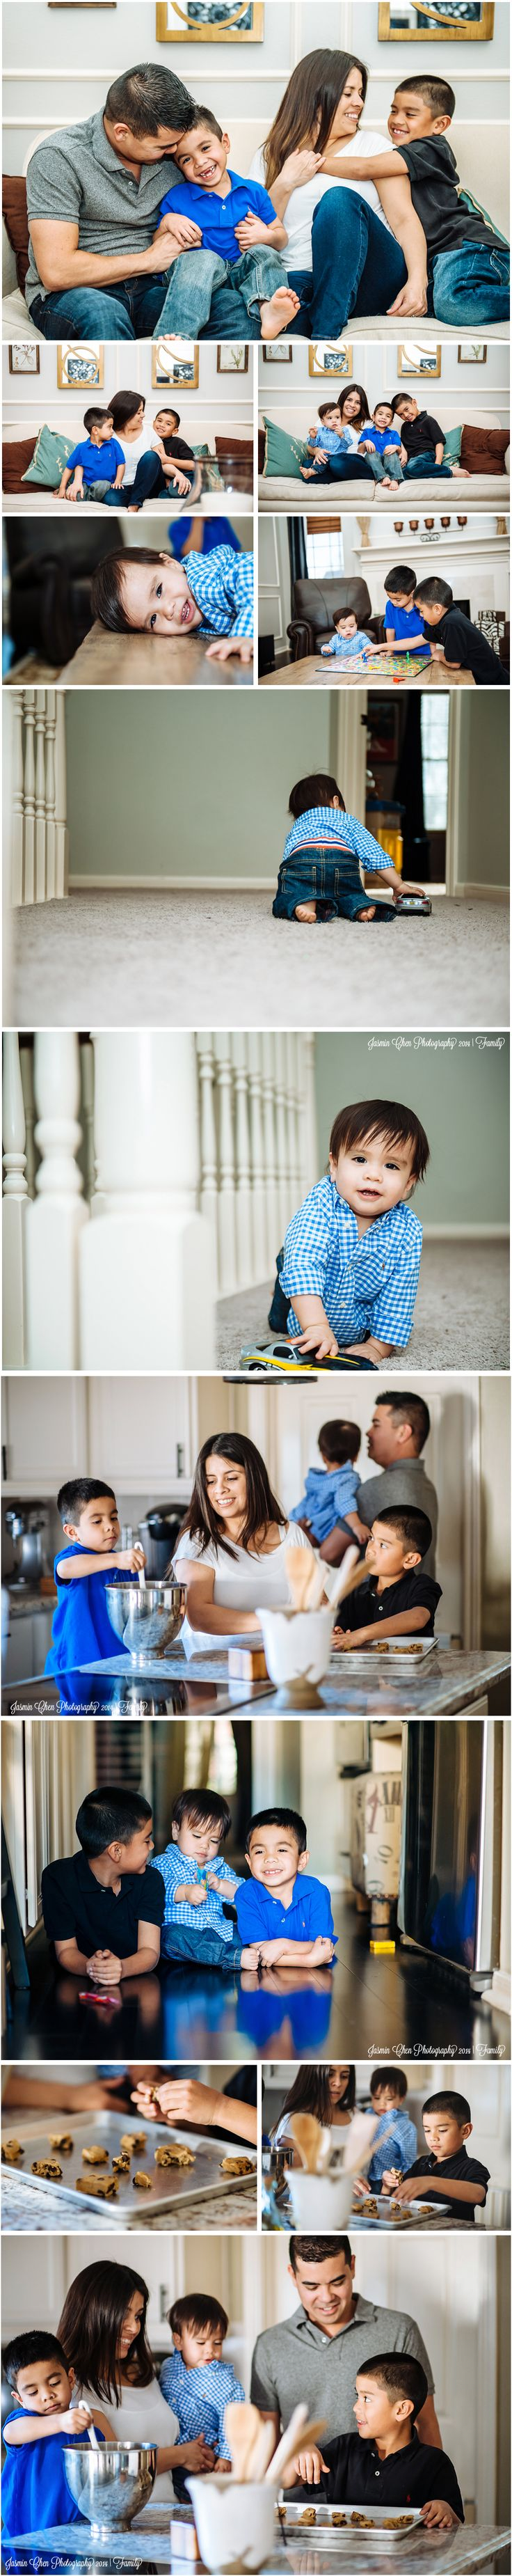 Home with the boys ~ life style photo shoot at home   Sugar Land, TX photographer